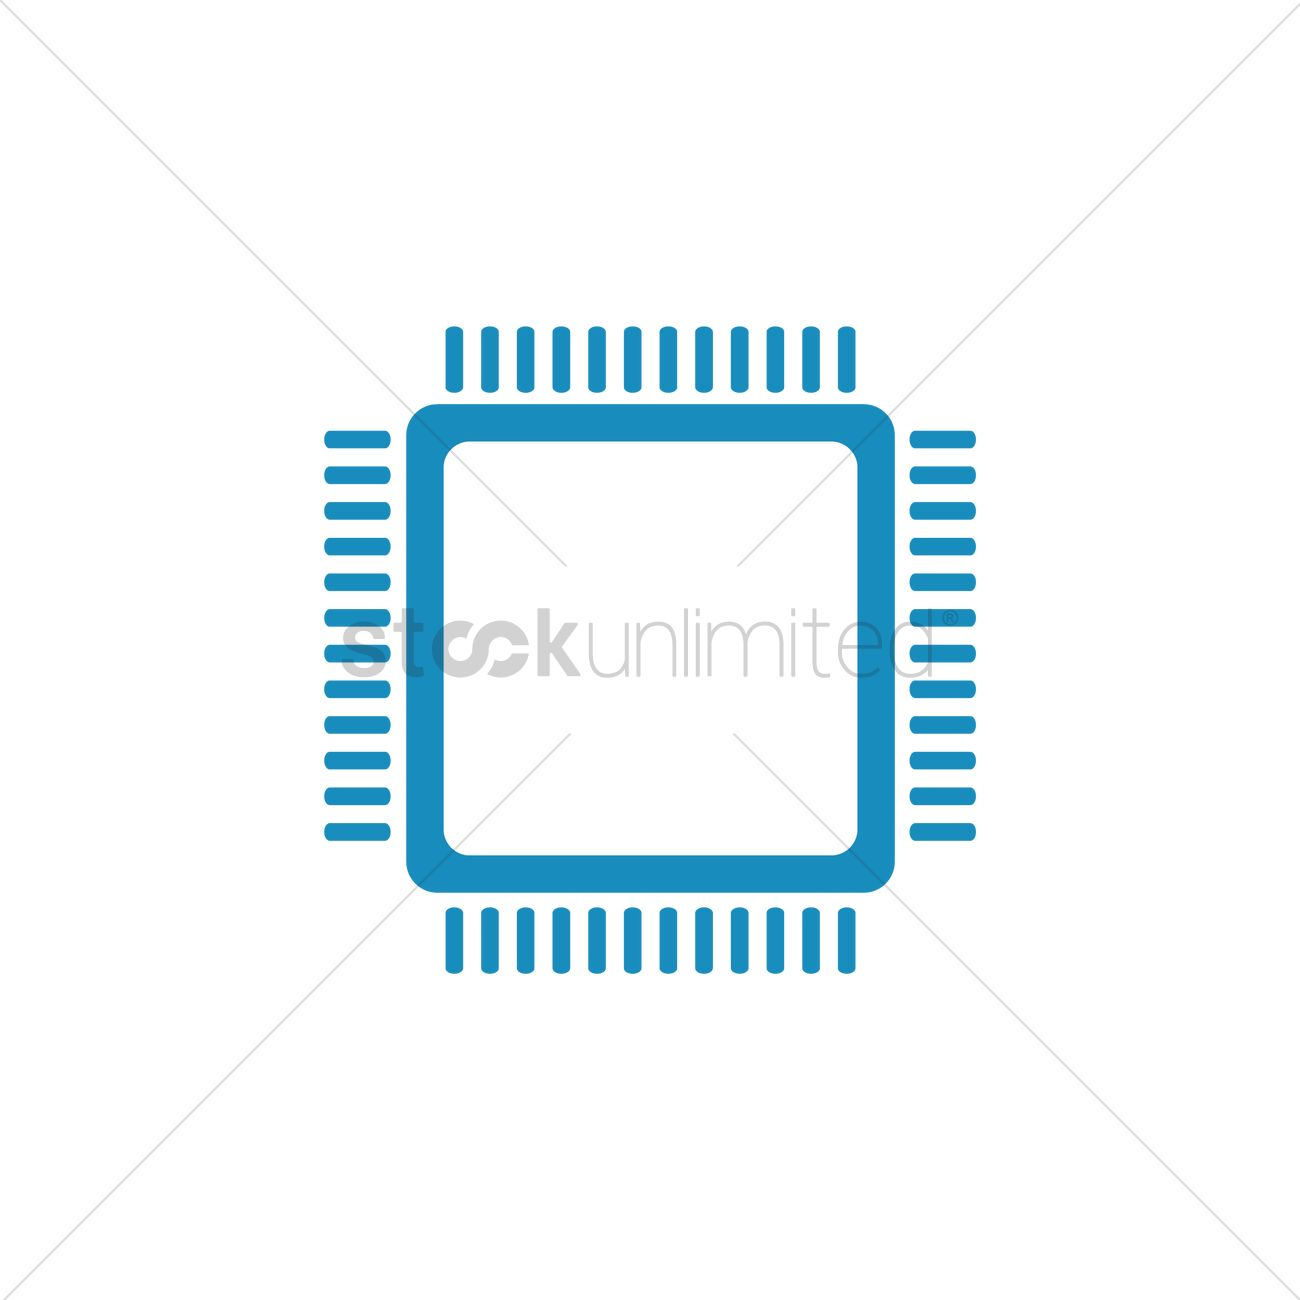 1300x1300 Computer Chip Vector Image